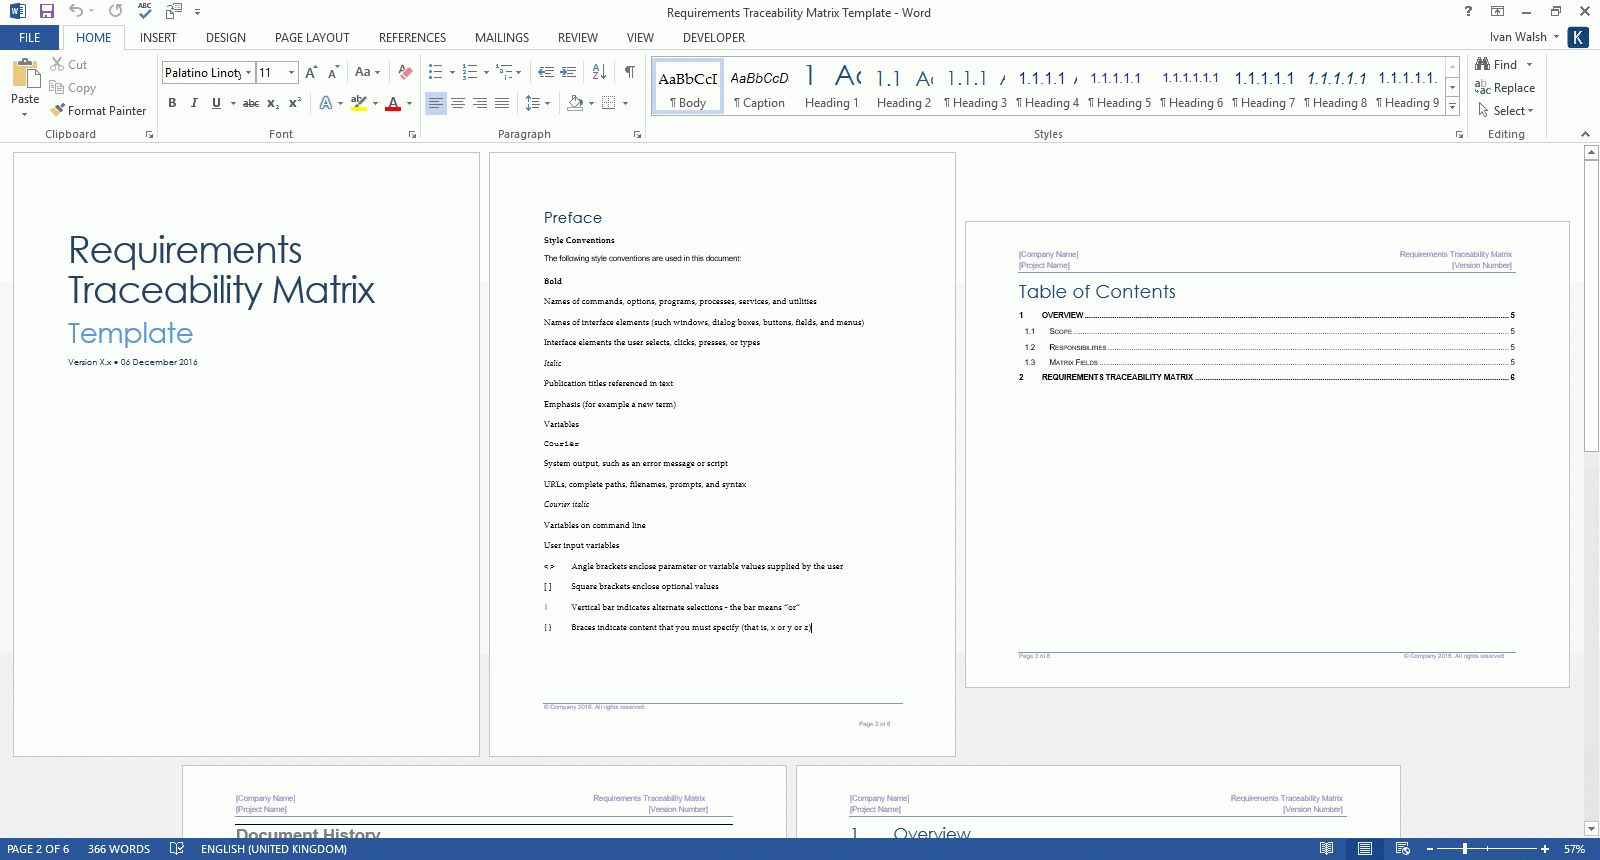 Test Plan Templates (Ms Word/excel) Templates, Forms for